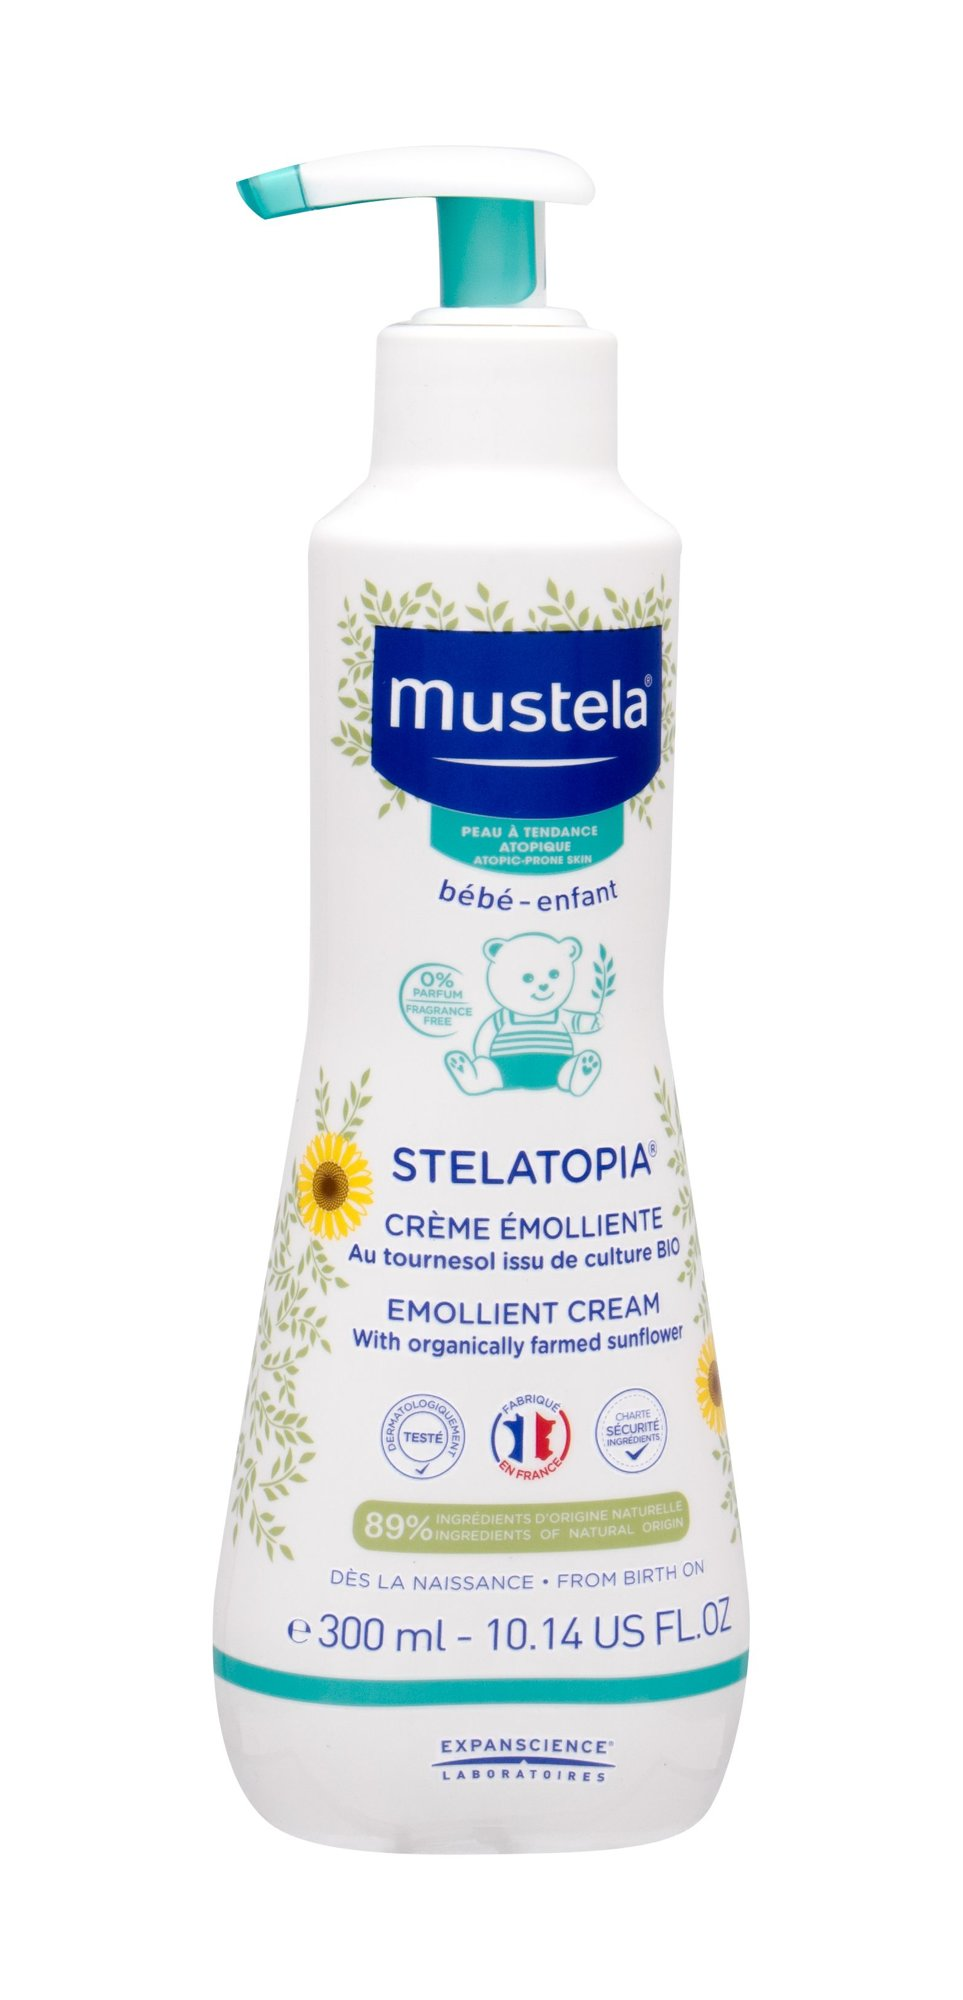 Mustela Bébé Stelatopia Body Cream 300ml  Emollient Cream